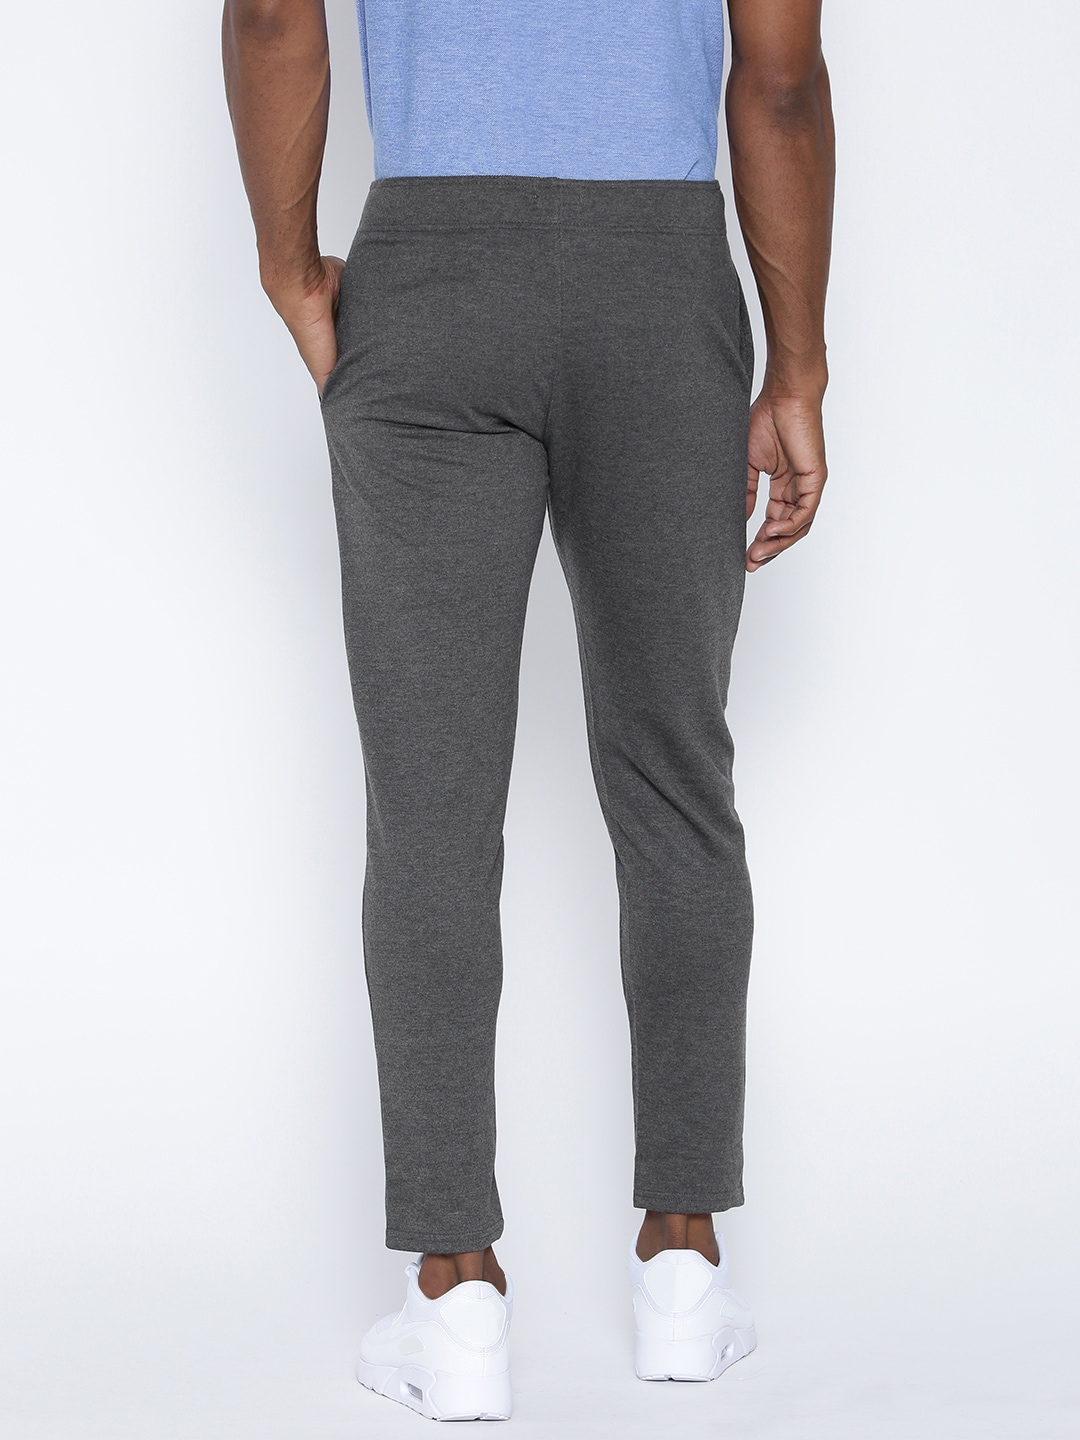 Hubberholme Charcoal Grey Slim Fit Track Pants